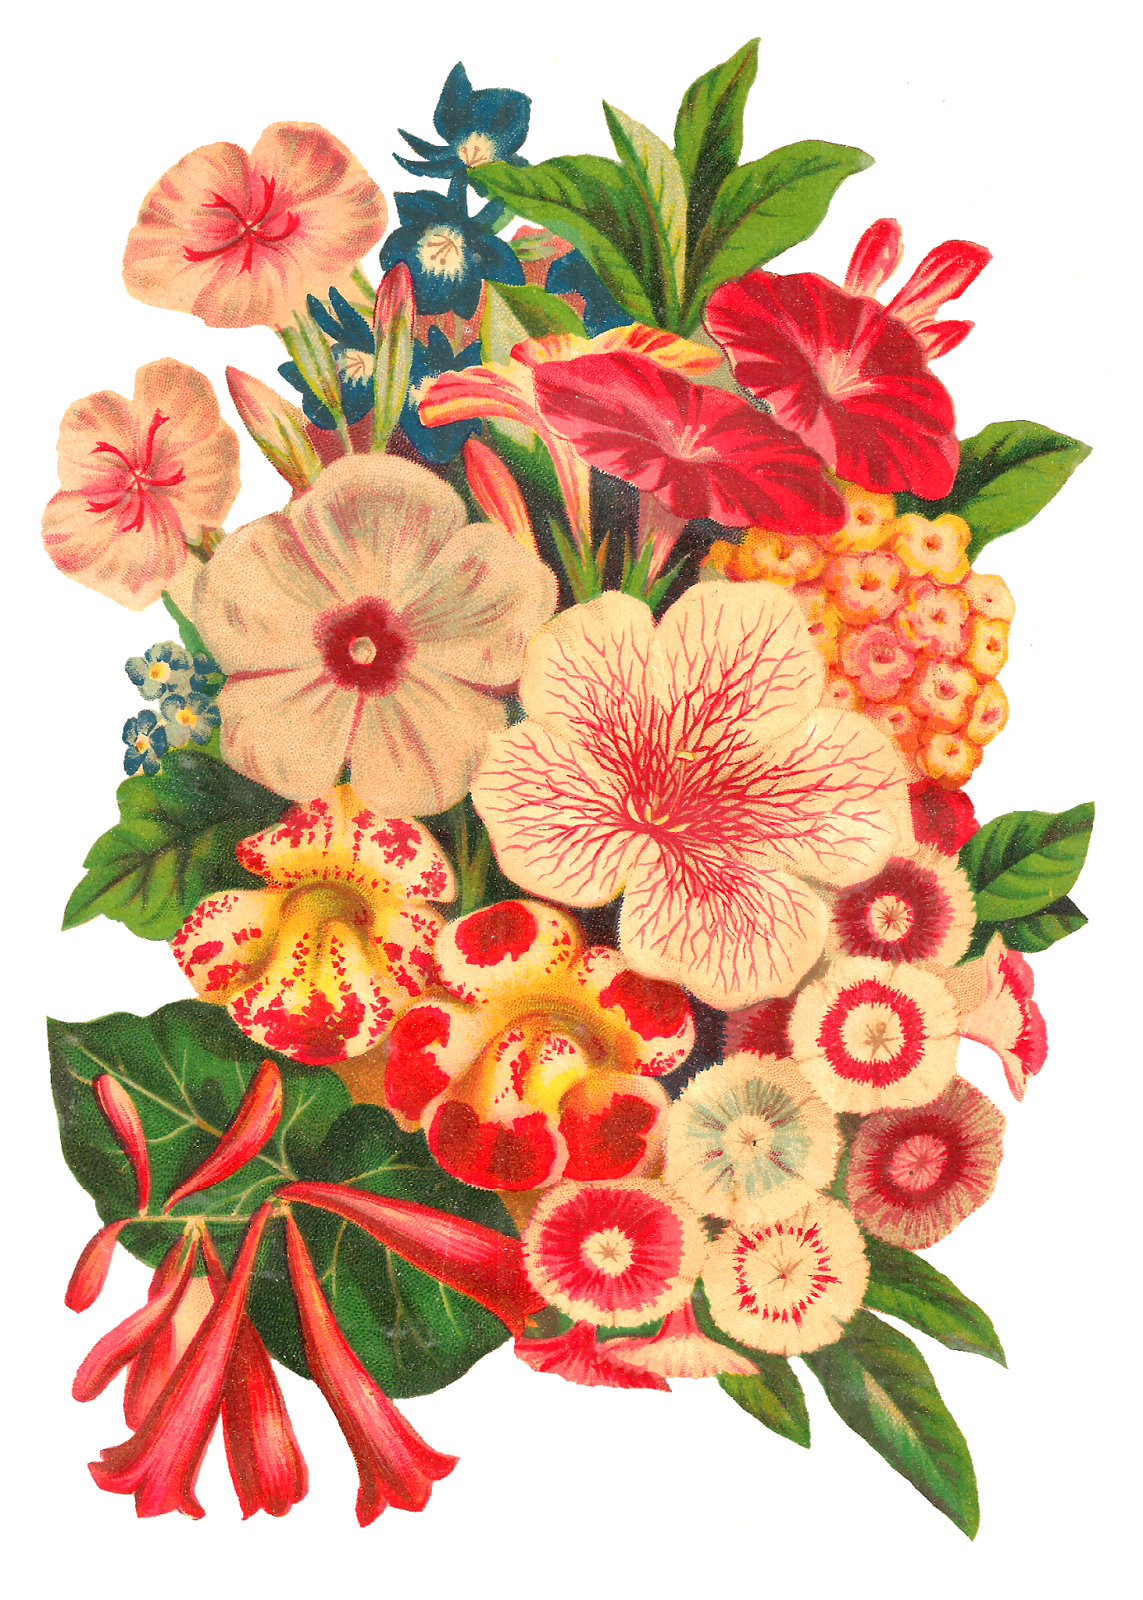 Antique images stock seed. Flower clipart pretty flower